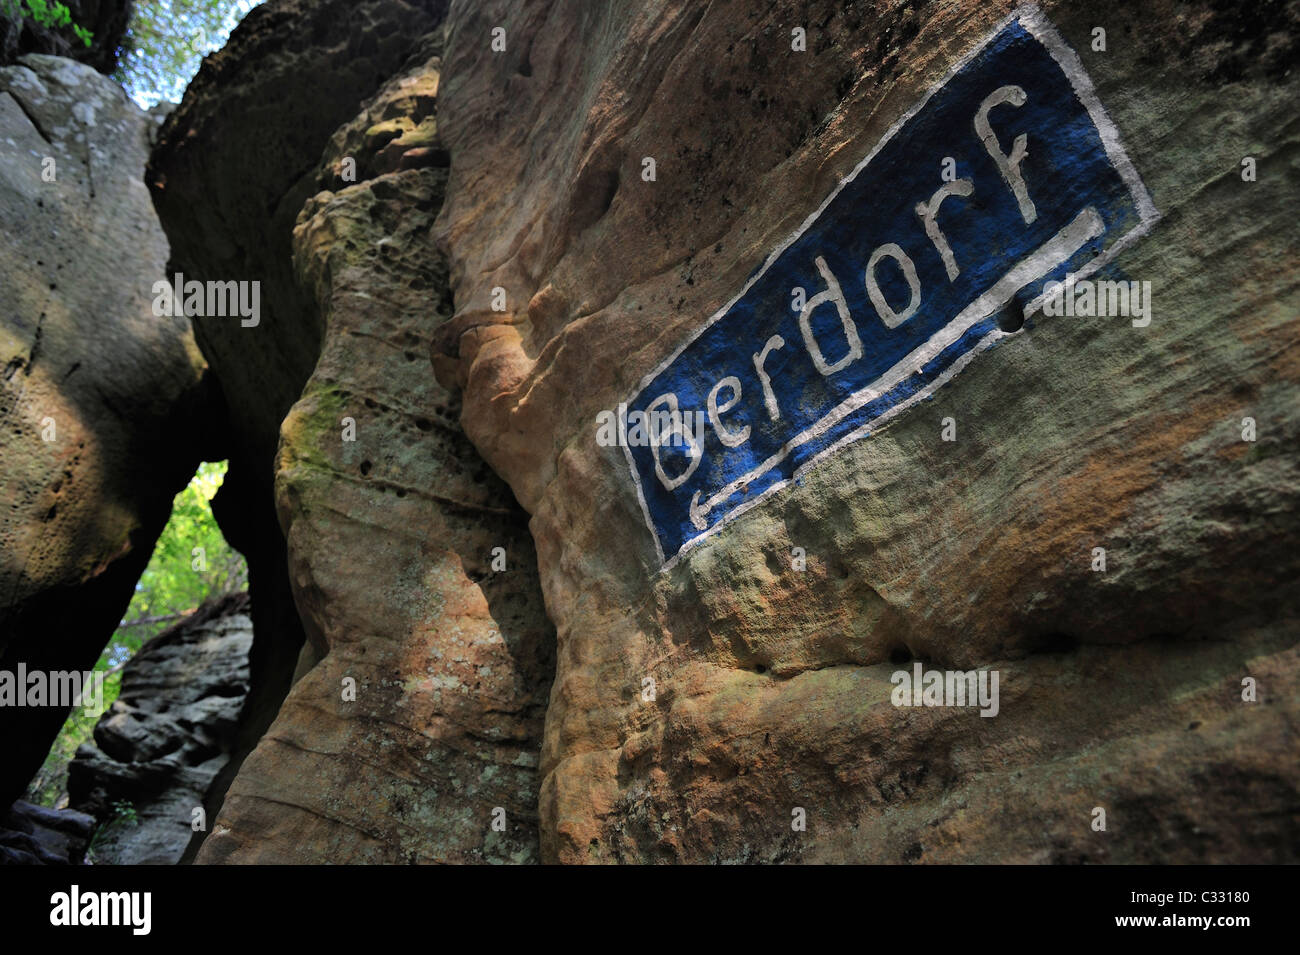 Berdorf sign on sandstone rock at Wanterbaach in Berdorf, Little Switzerland / Mullerthal, Grand Duchy of Luxembourg - Stock Image